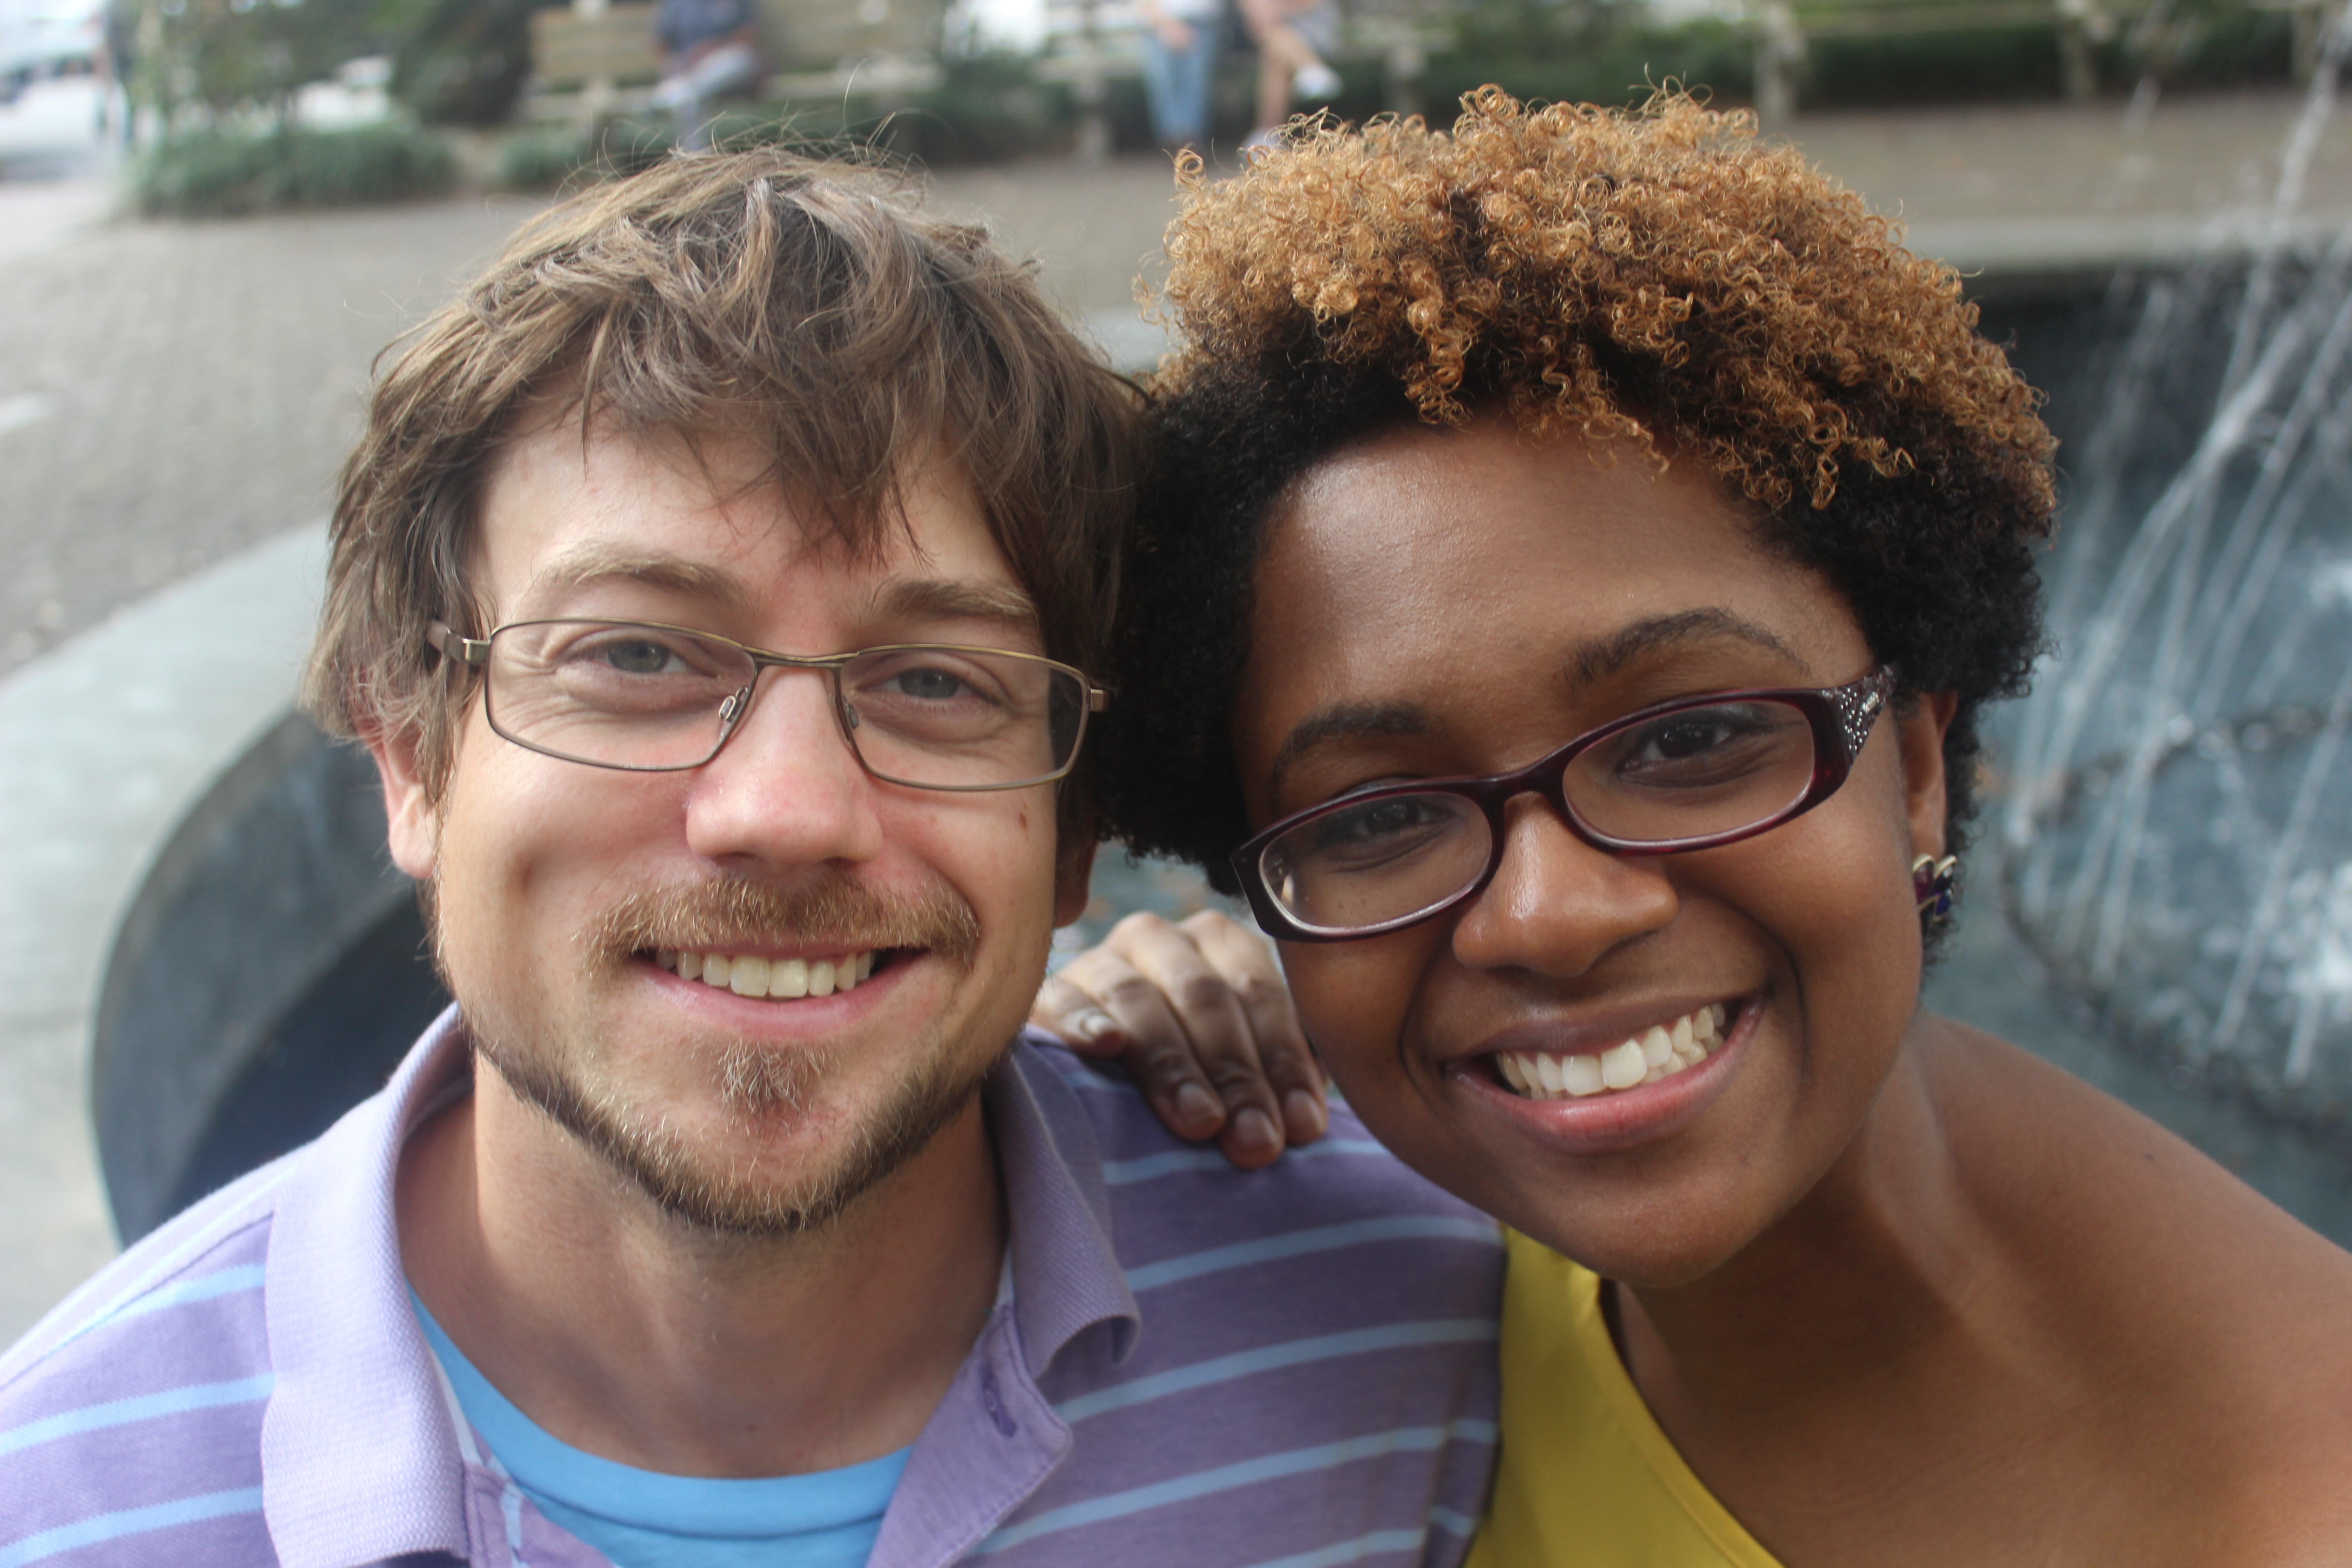 Where is interracial dating most common